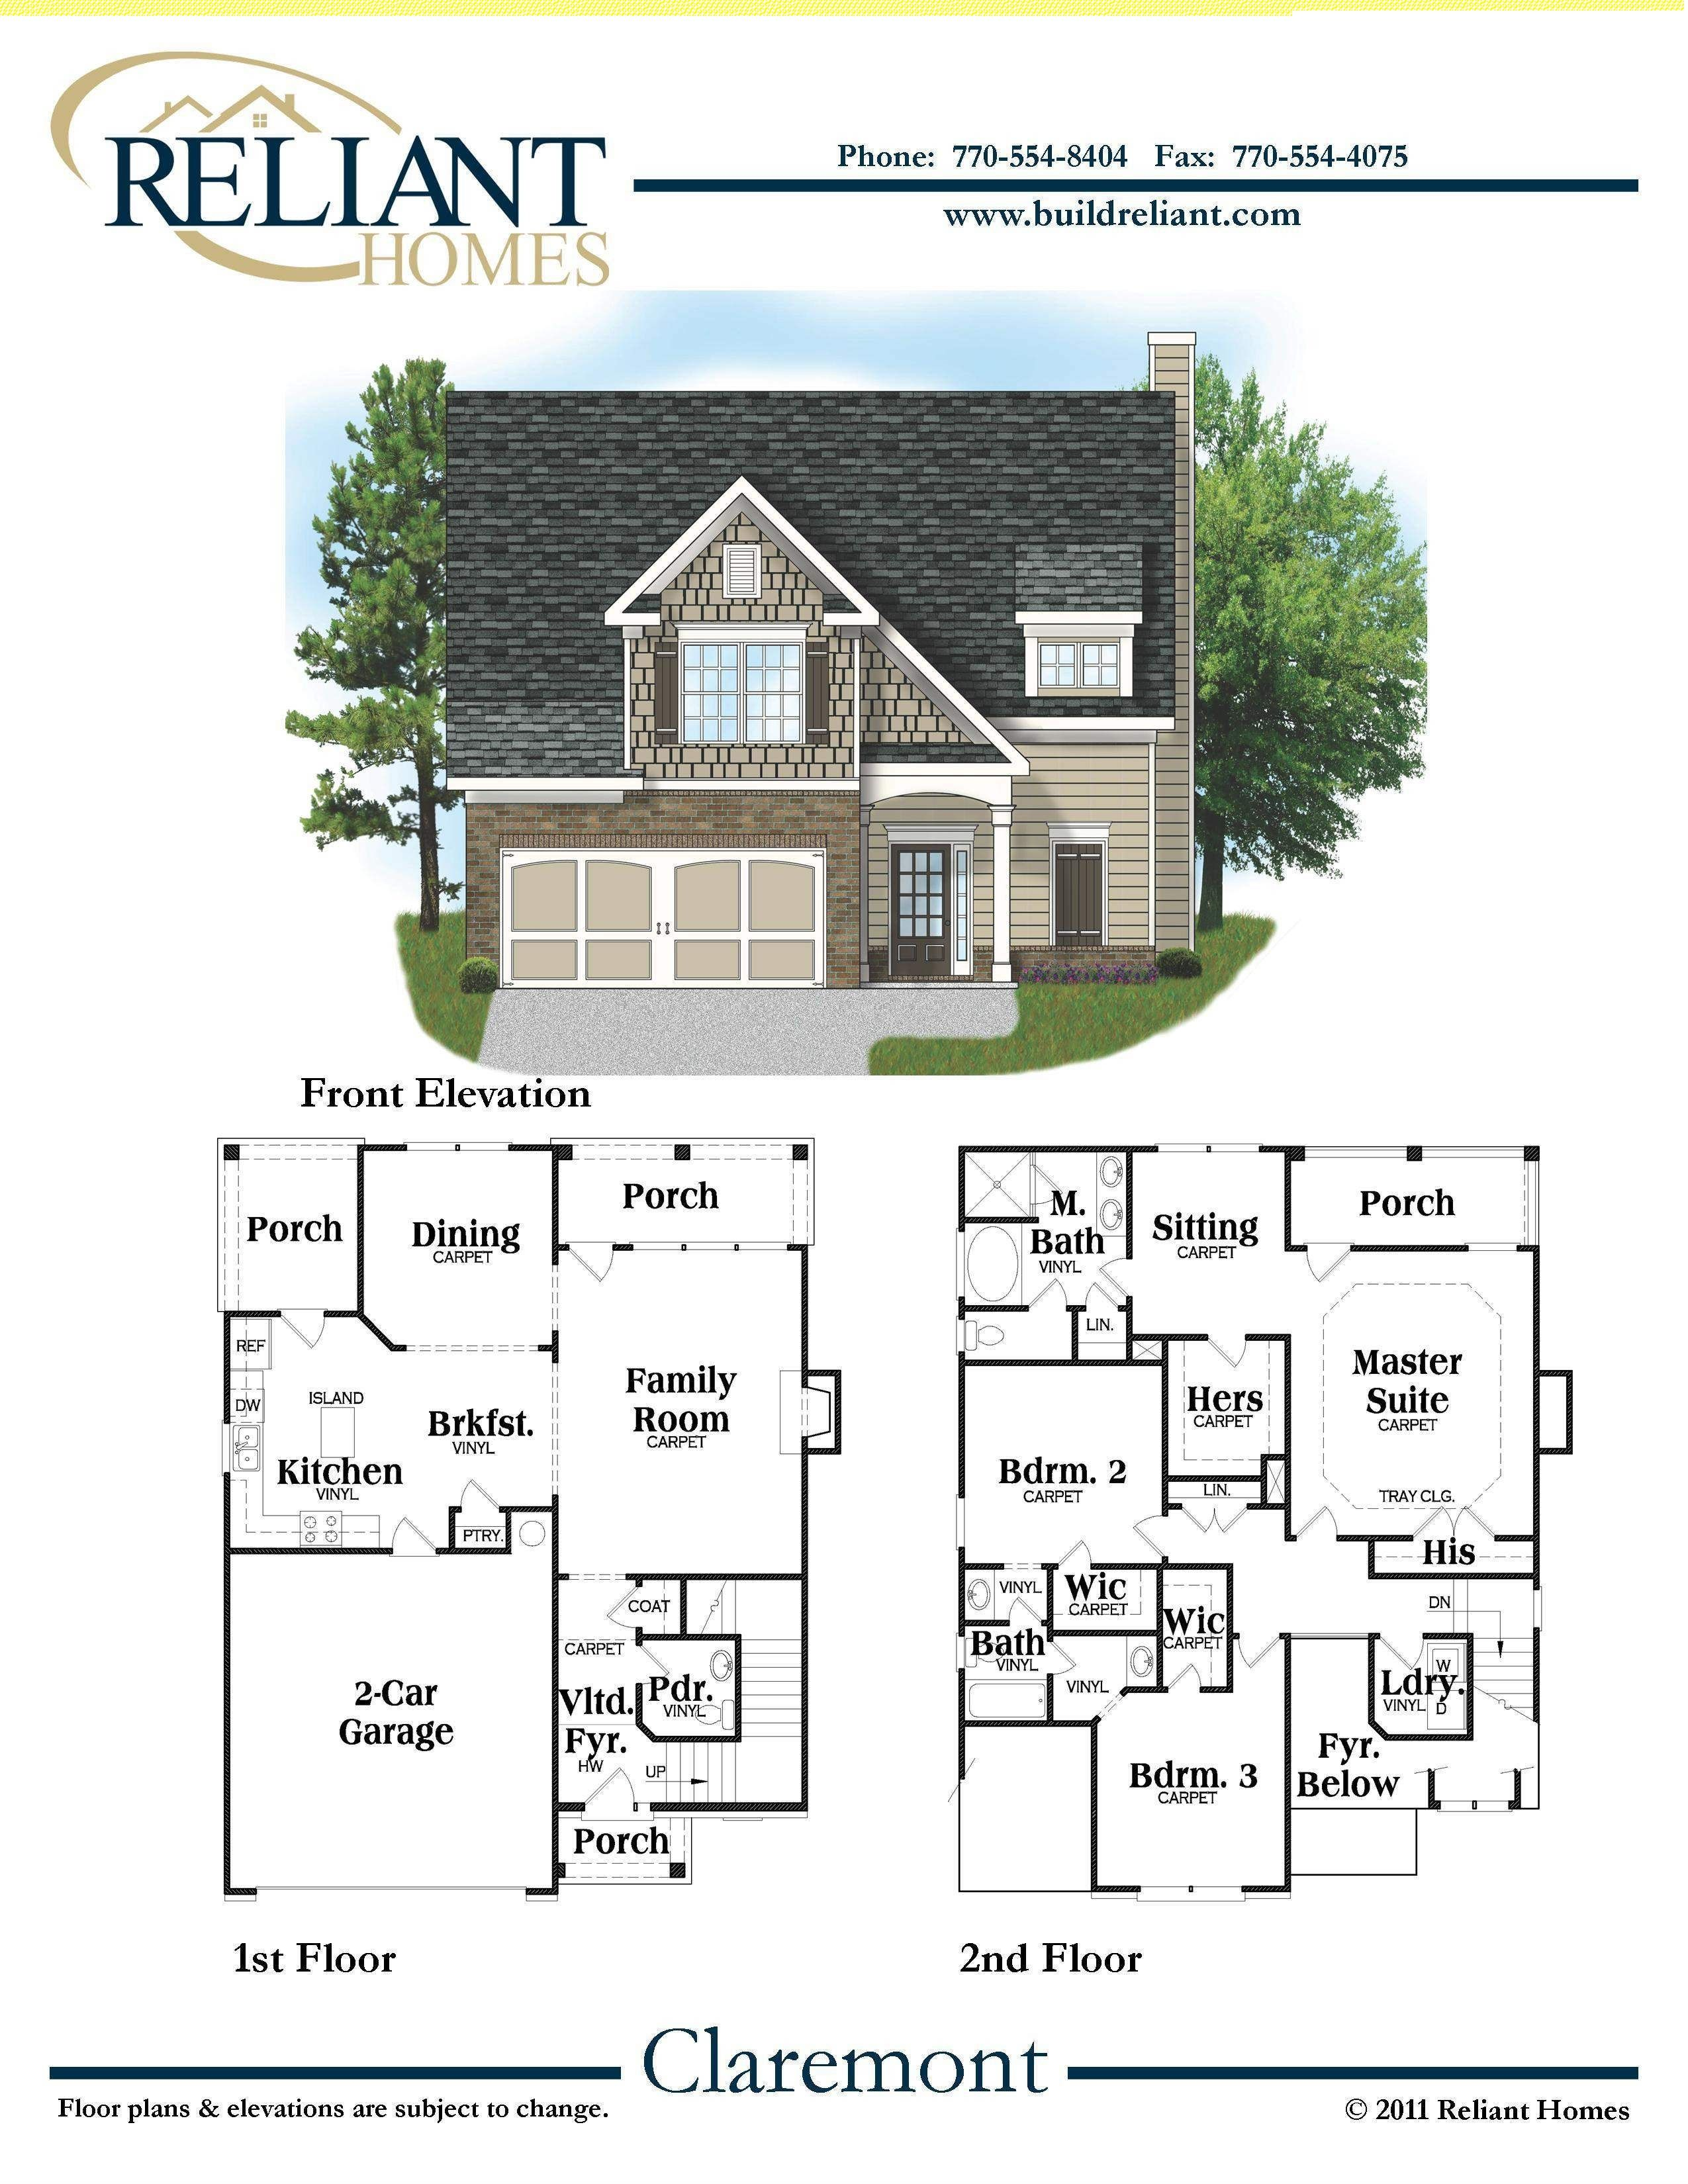 173b797d0574786a59376f40de4e6a16 Top Result 52 Best Of Craftsman Style Home Plans Photography 2017 Hdj5